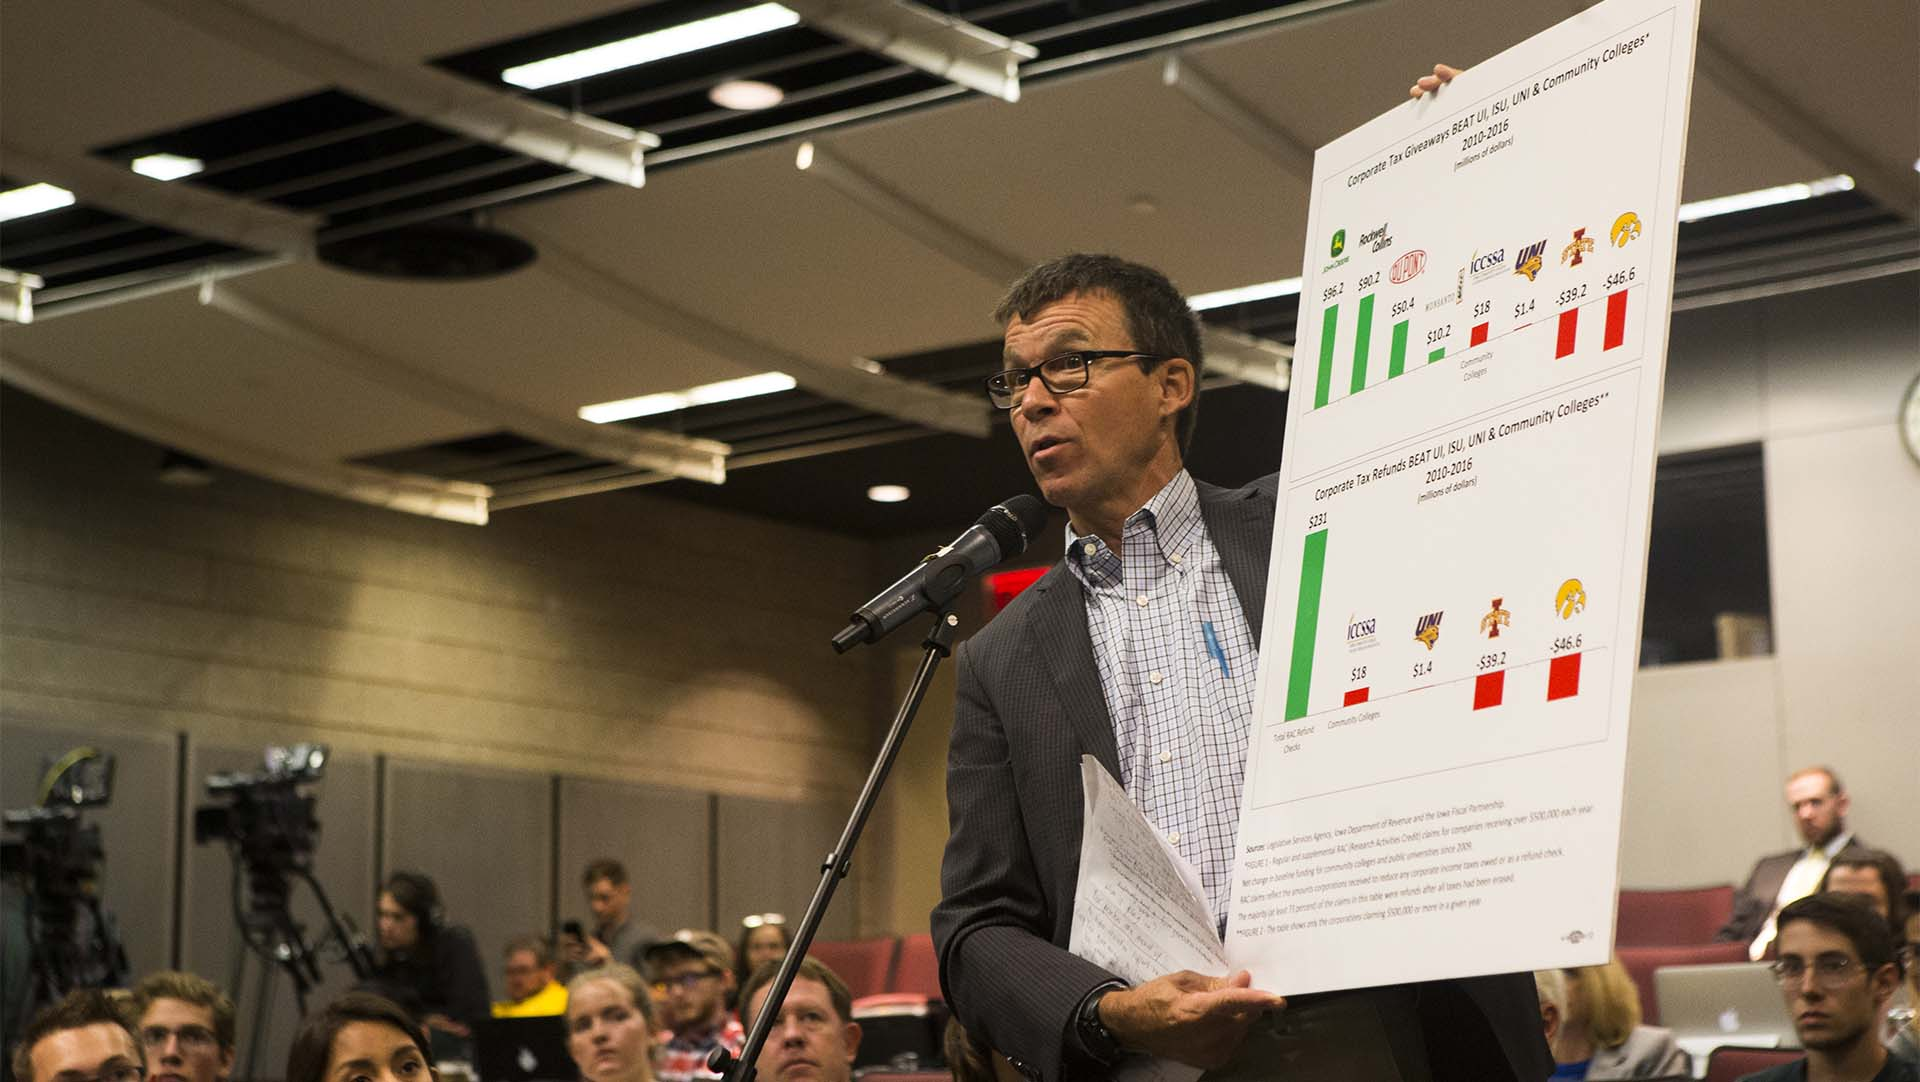 State legislator Joe Bolkcom holds a graphic during a state Board of Regents tuition task force meeting in Kollros Auditorium in Biology Building East in Iowa City on Monday, Aug. 14, 2017. (Joseph Cress/The Daily Iowan)